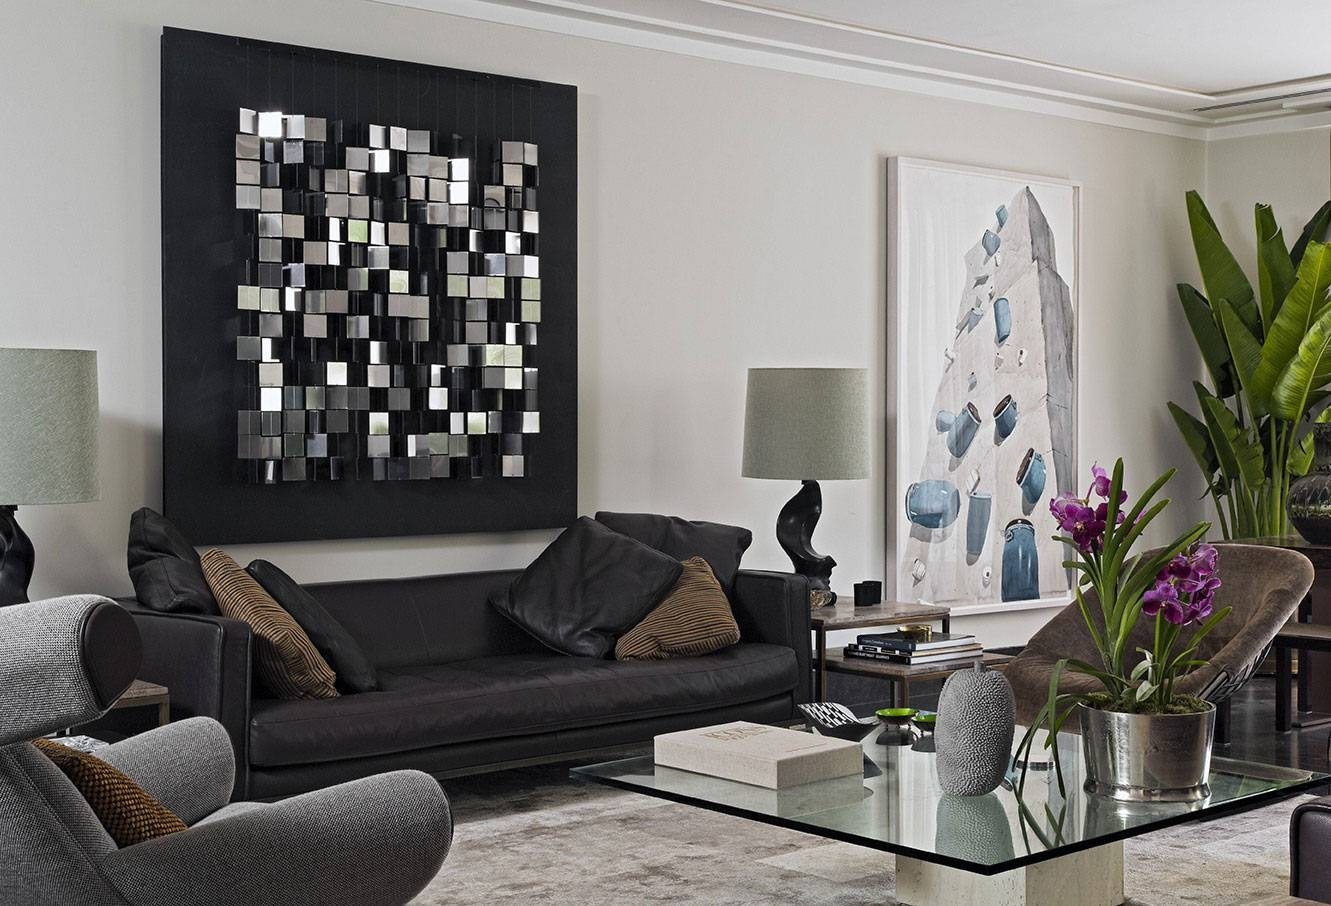 Wall Art Designs: Pictures And Painting Decorating With Wall Art Throughout Current Cool Modern Wall Art (View 5 of 24)